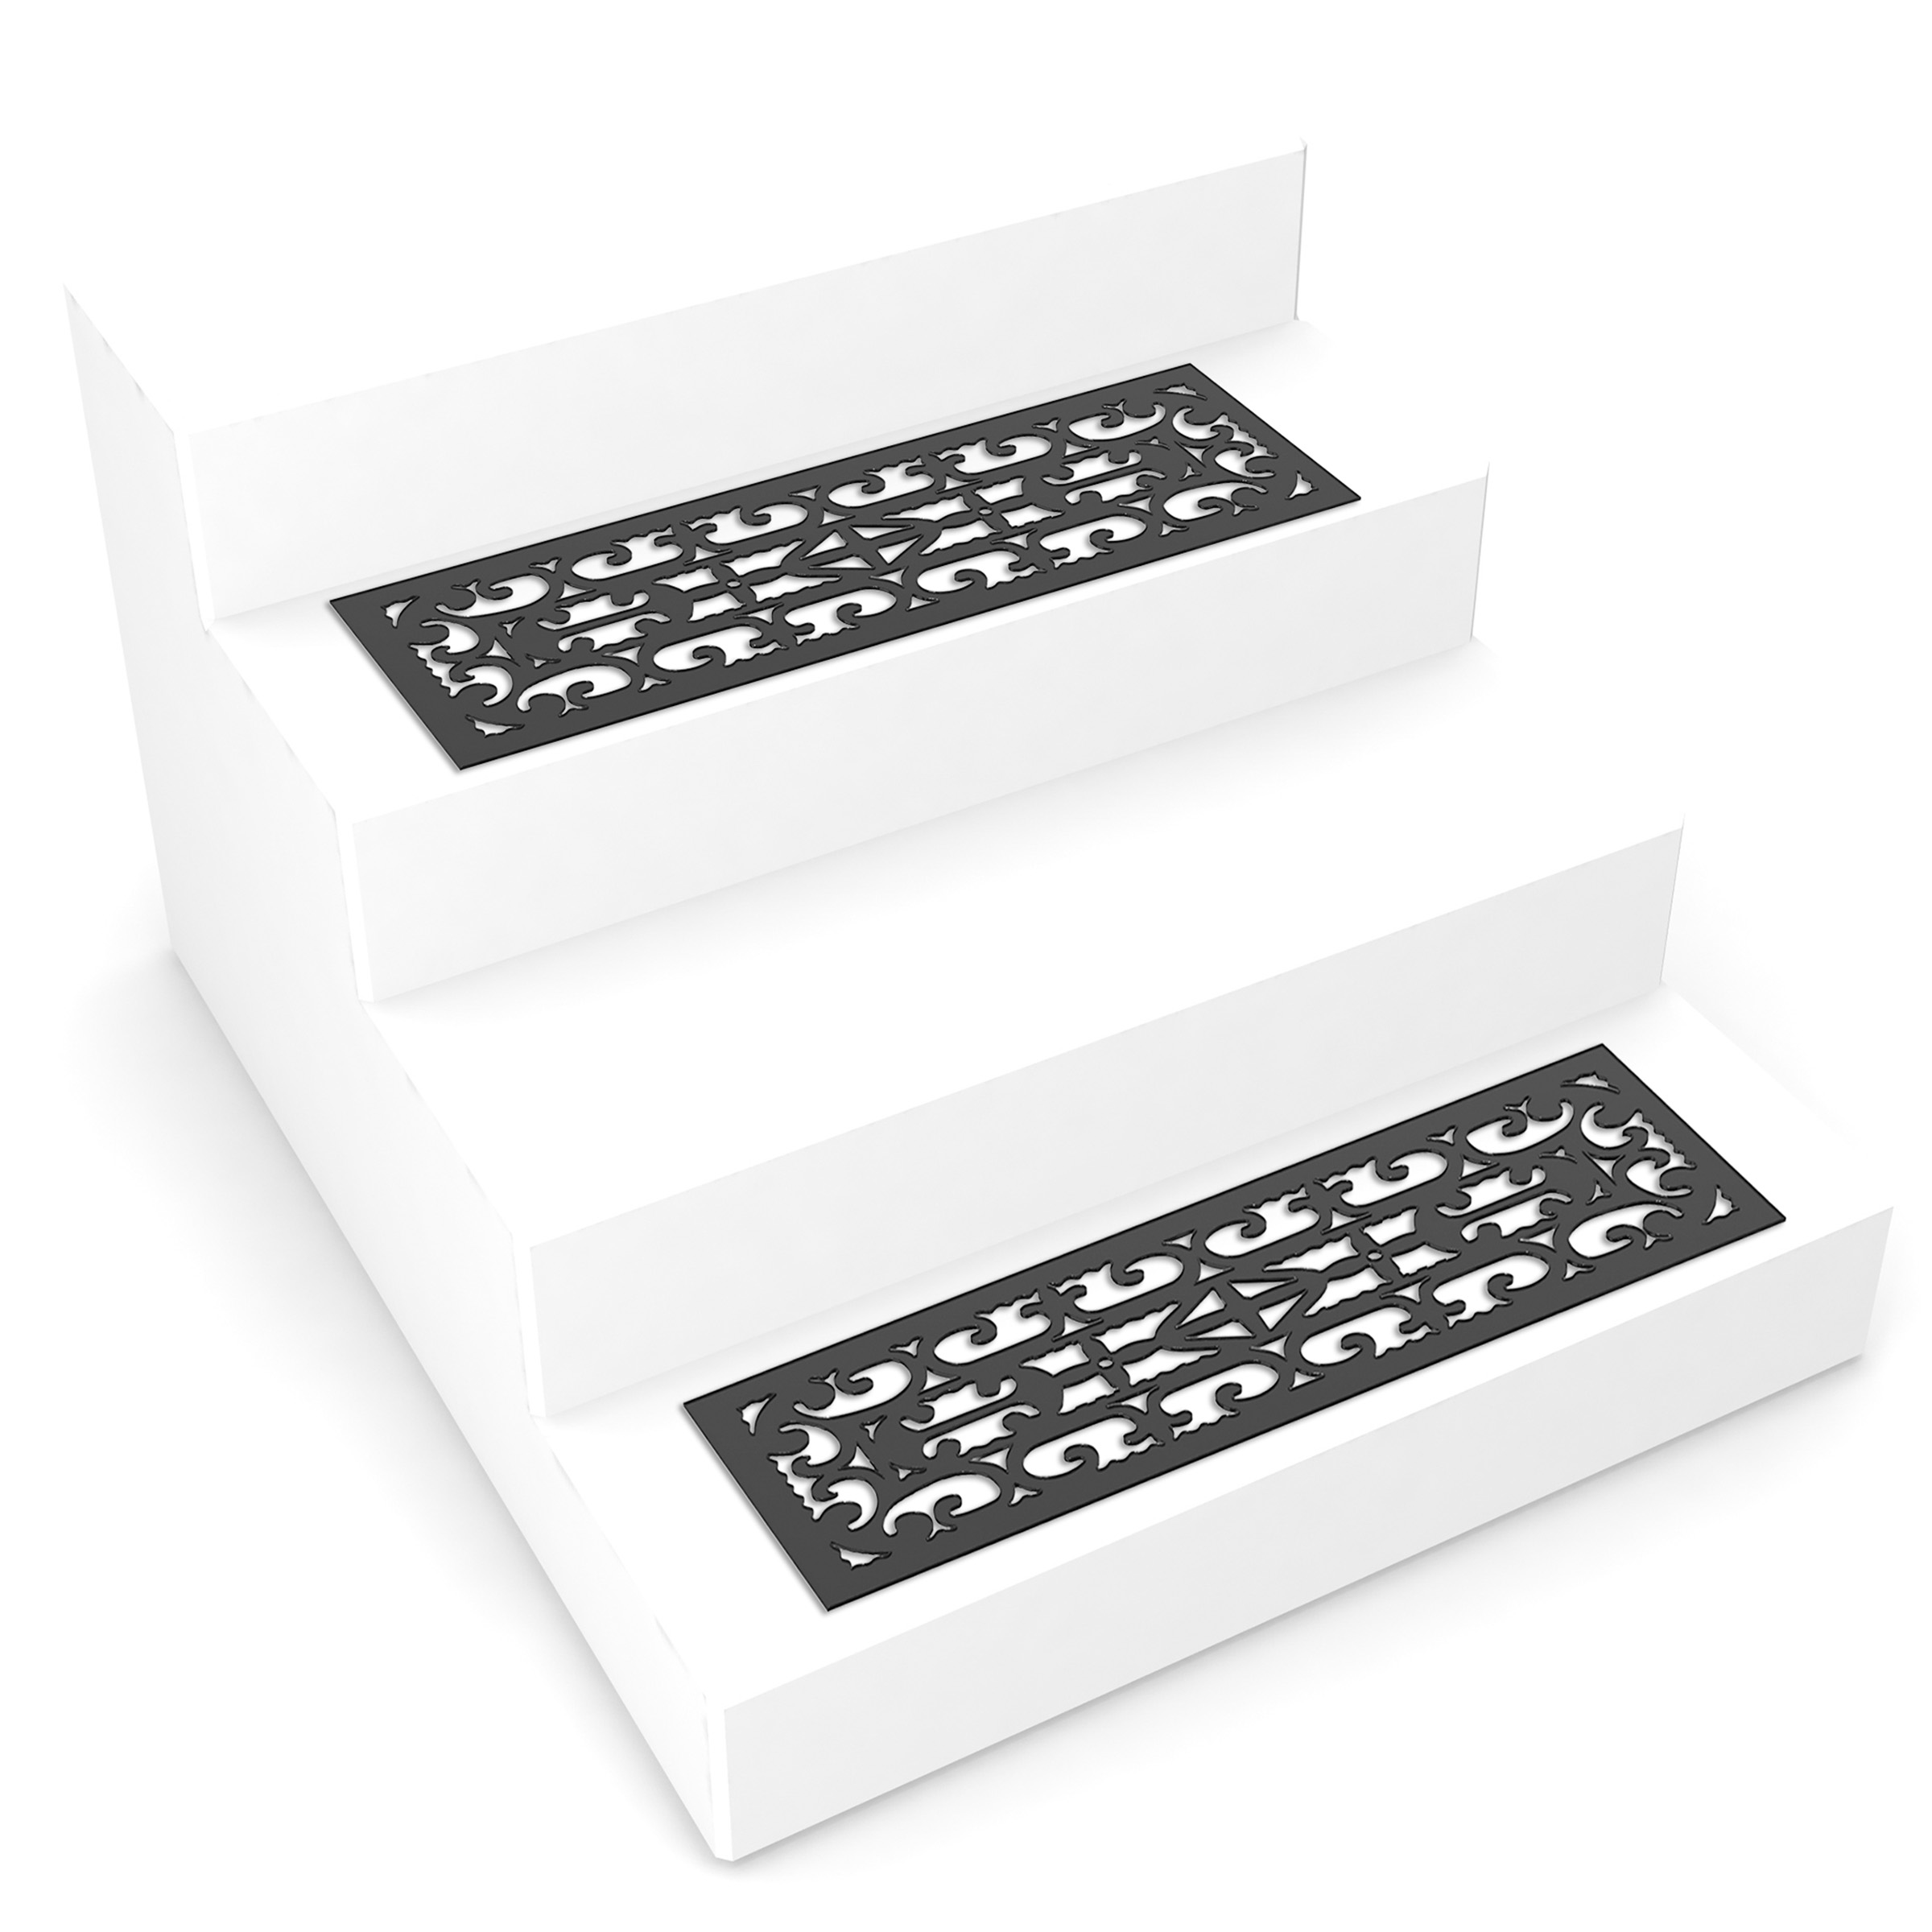 Non Slip Stair Mats With Traction Control Grip   Set Of 2 Black Mat Pads